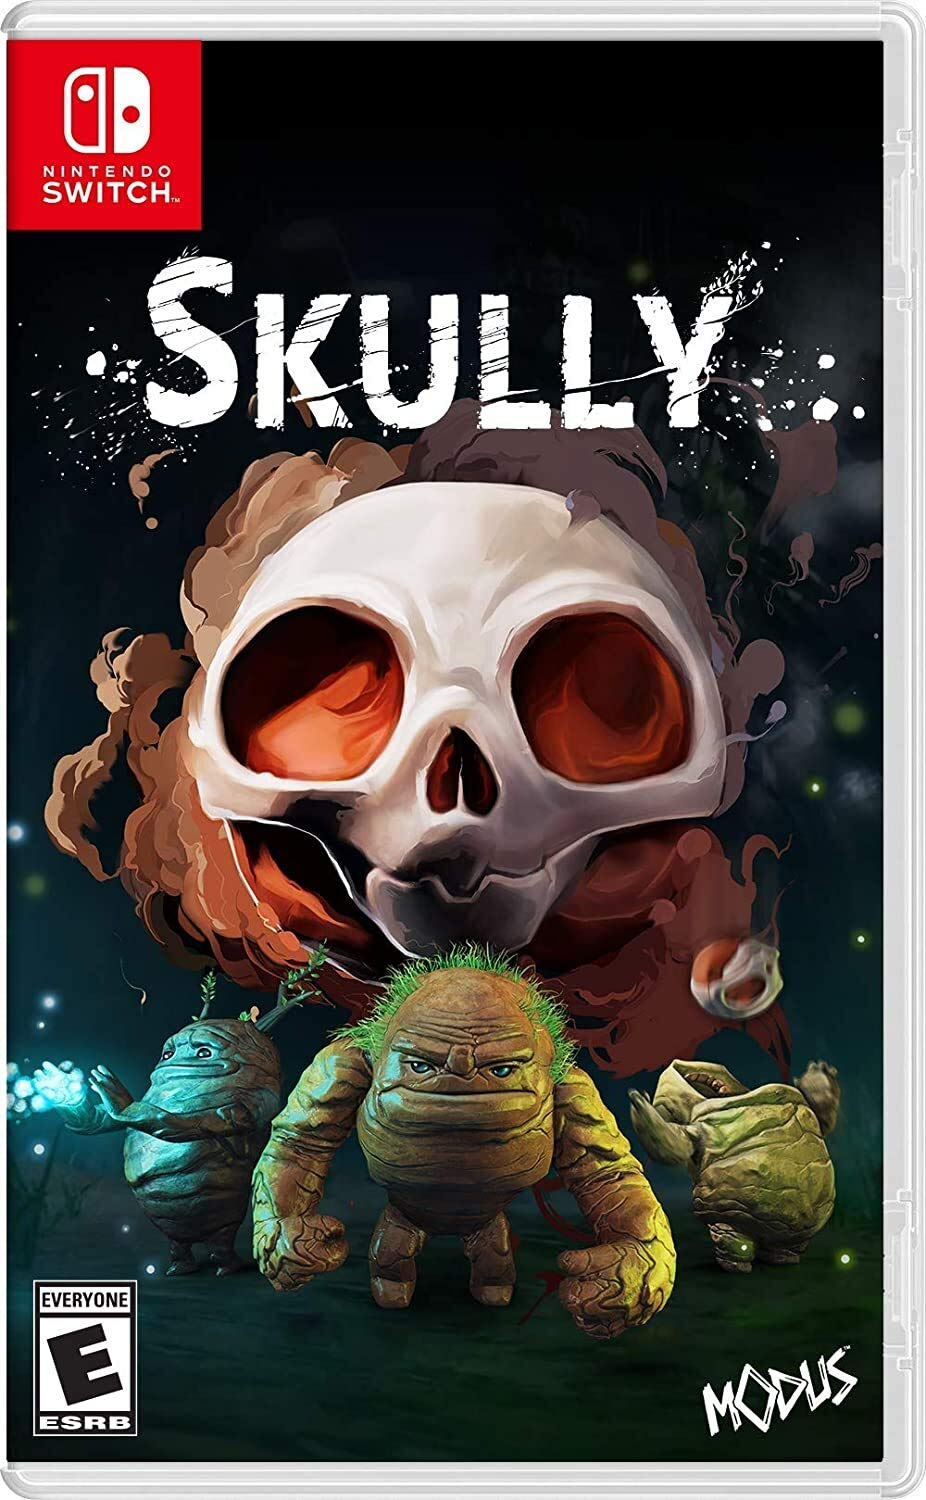 Amazon.com: Skully (NSW) - Nintendo Switch: Maximum Games LLC ...